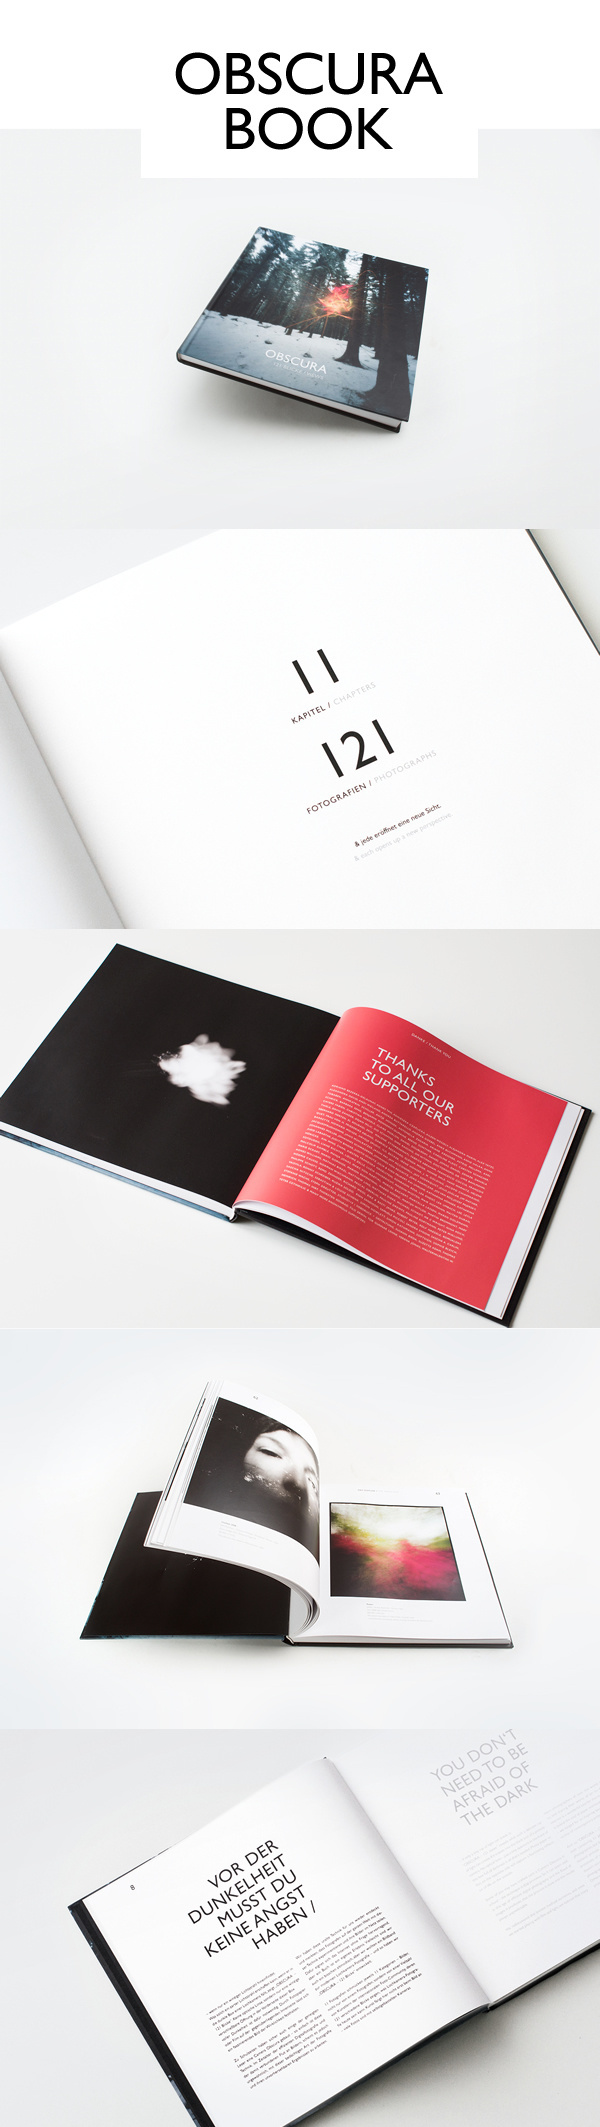 OBSCURA BOOK – 121 Views / LAUNCH on Behance #design #graphic #book #photography #layout